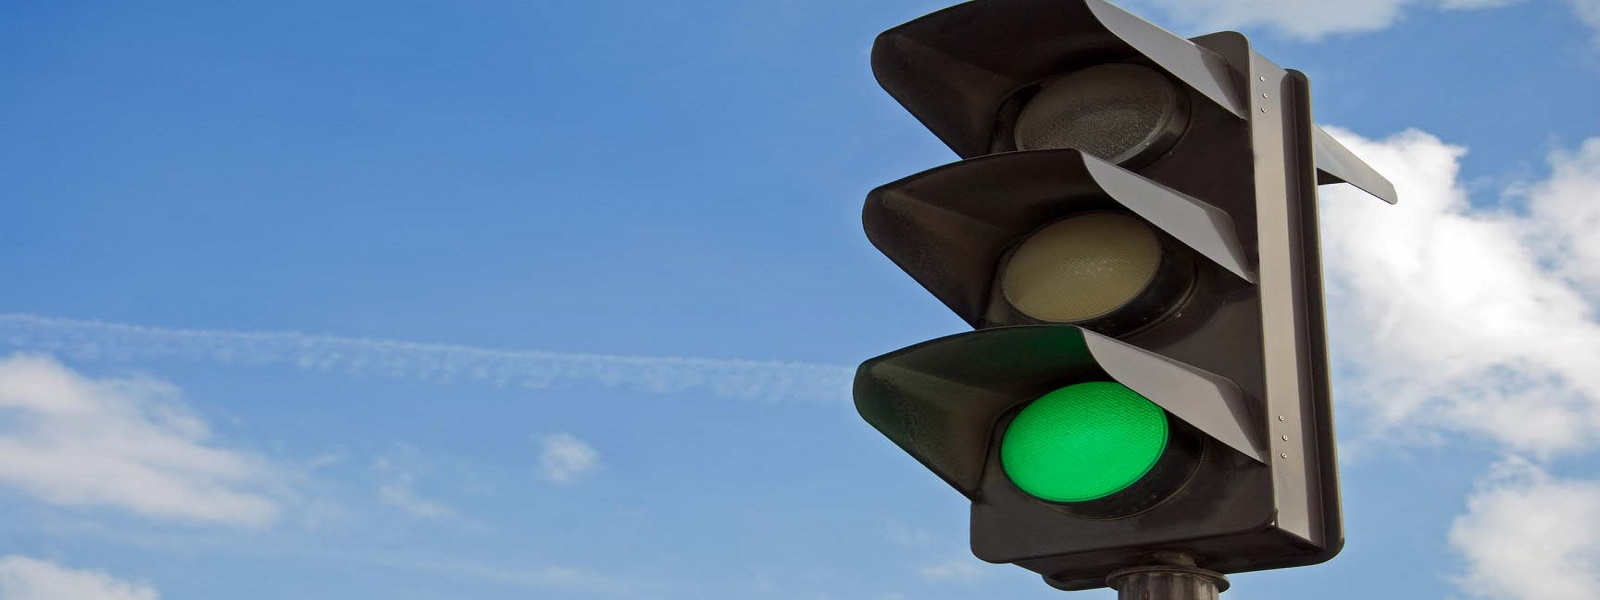 Green color on the traffic light with a beautiful blue sky in background